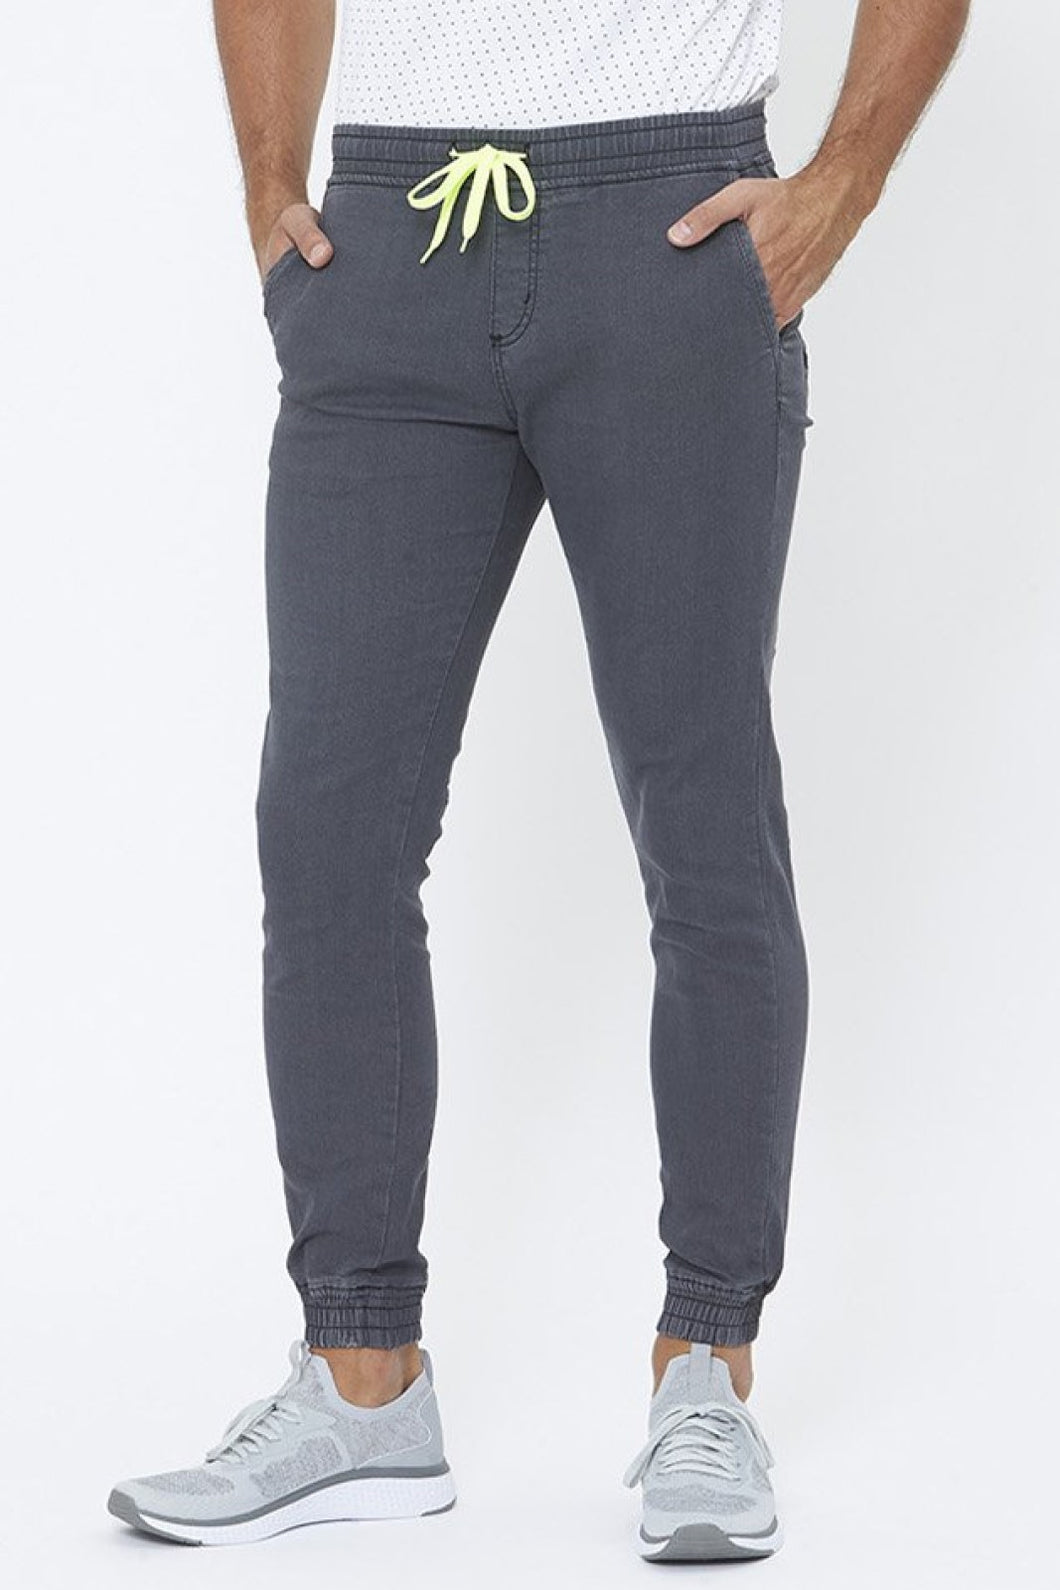 Grey Jogger-Style Jean